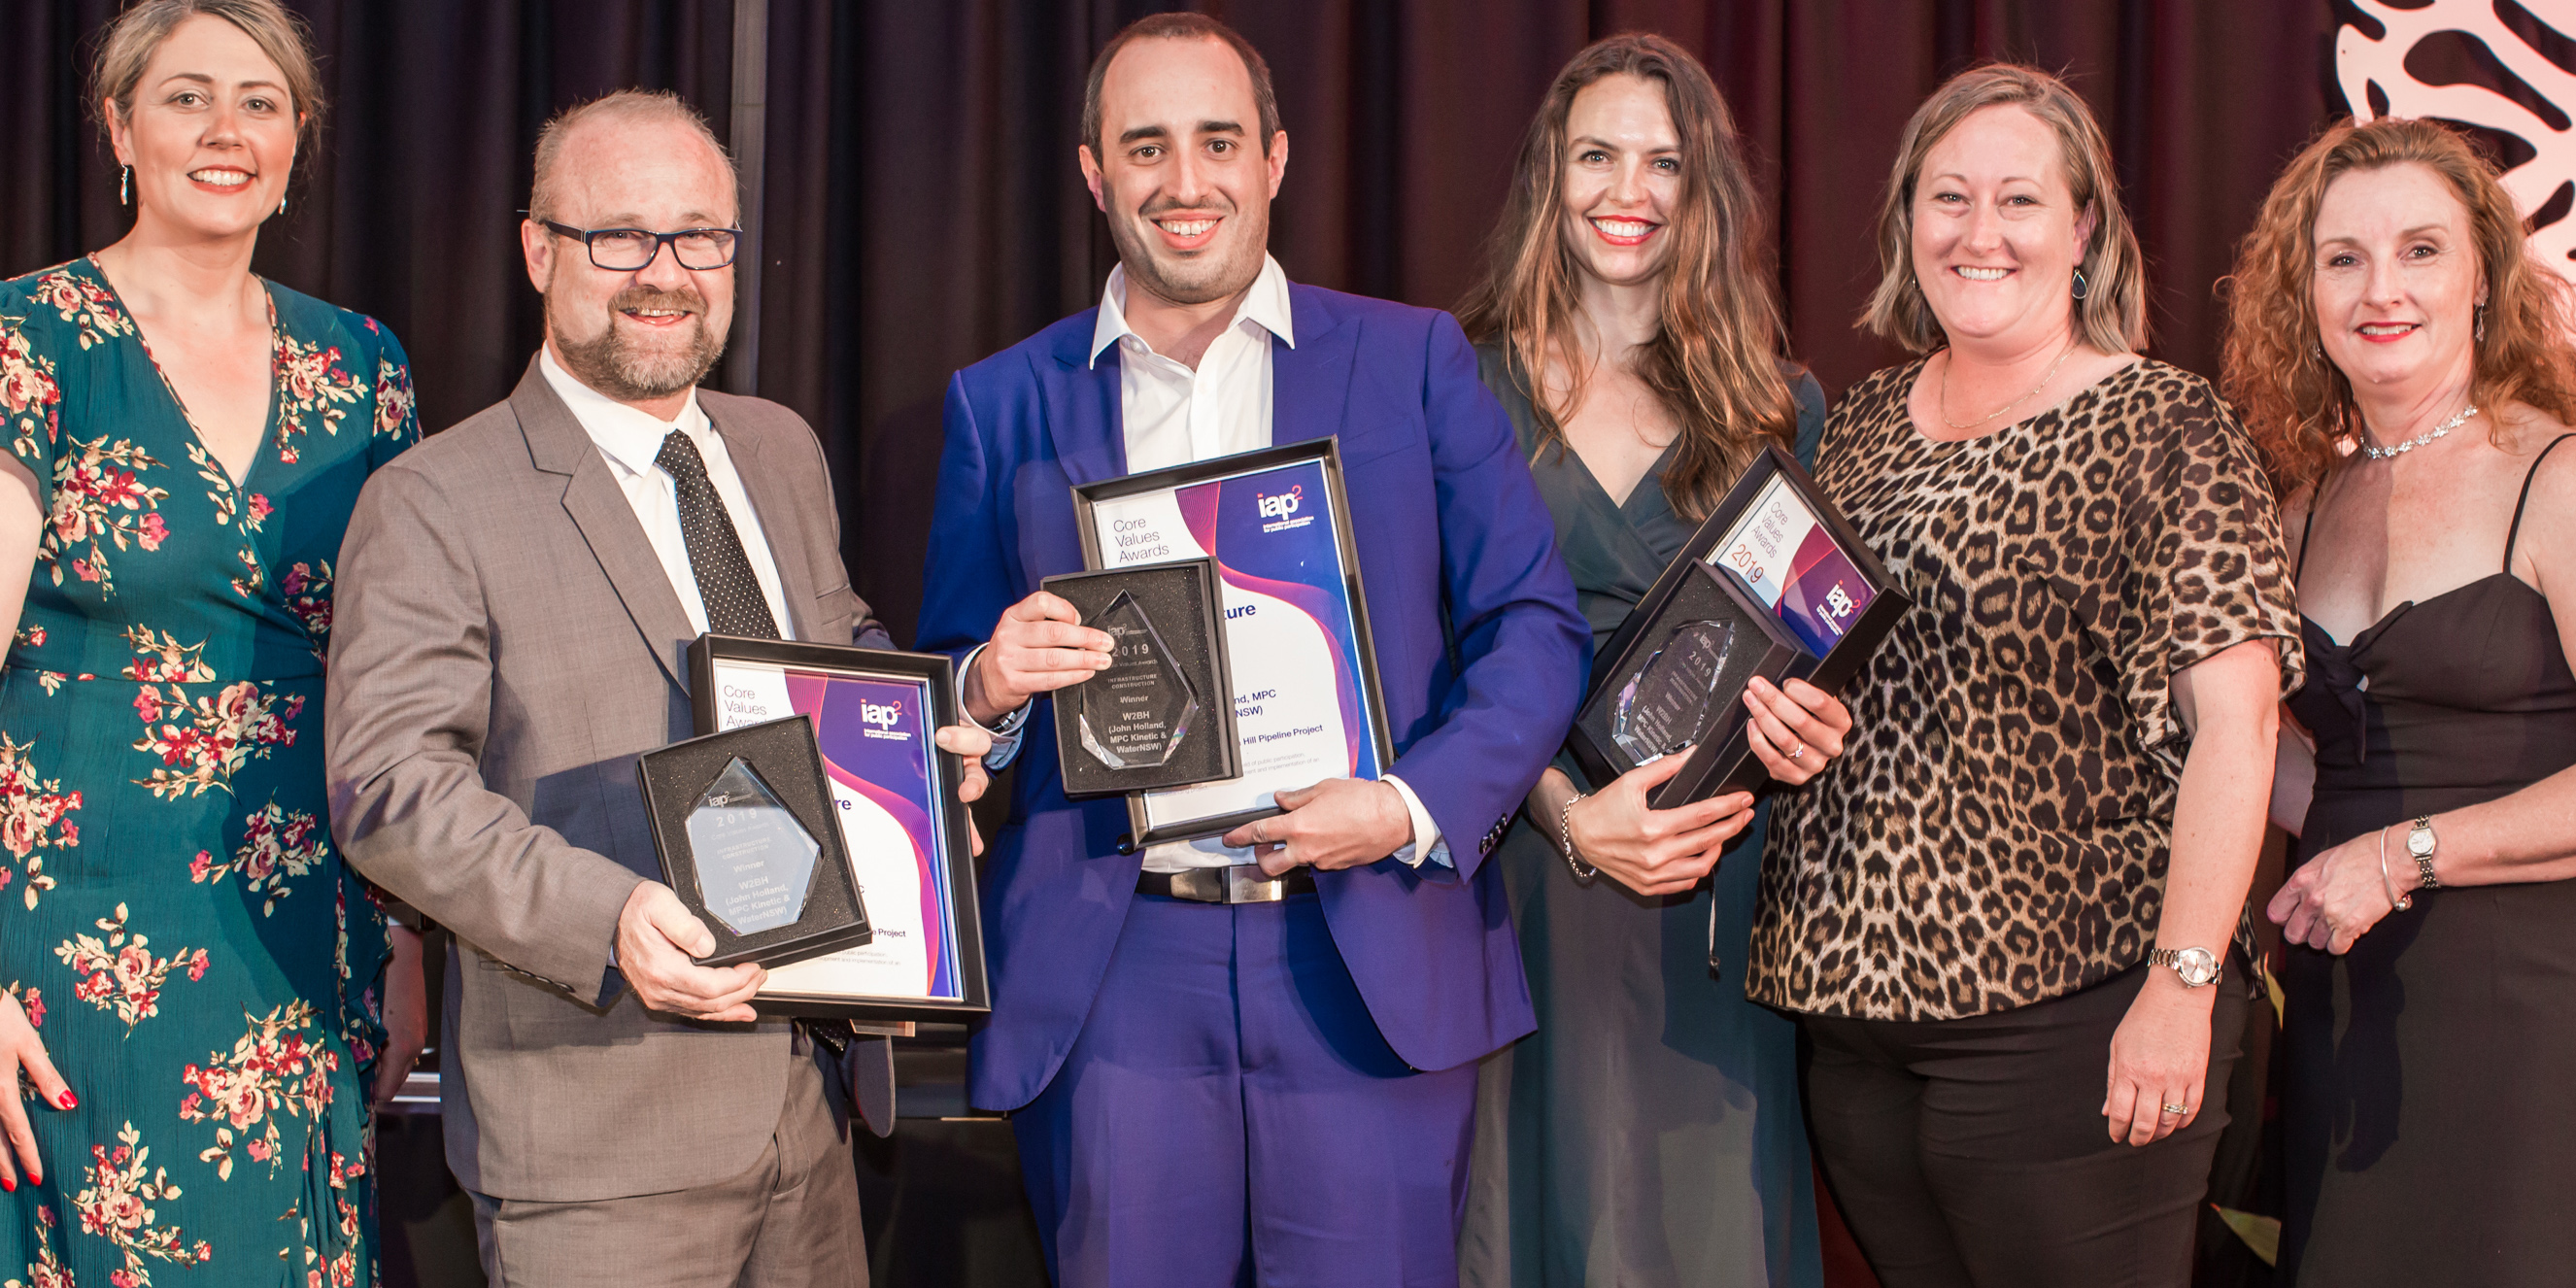 Wentworth to Broken Hill Pipeline Project team accepting award